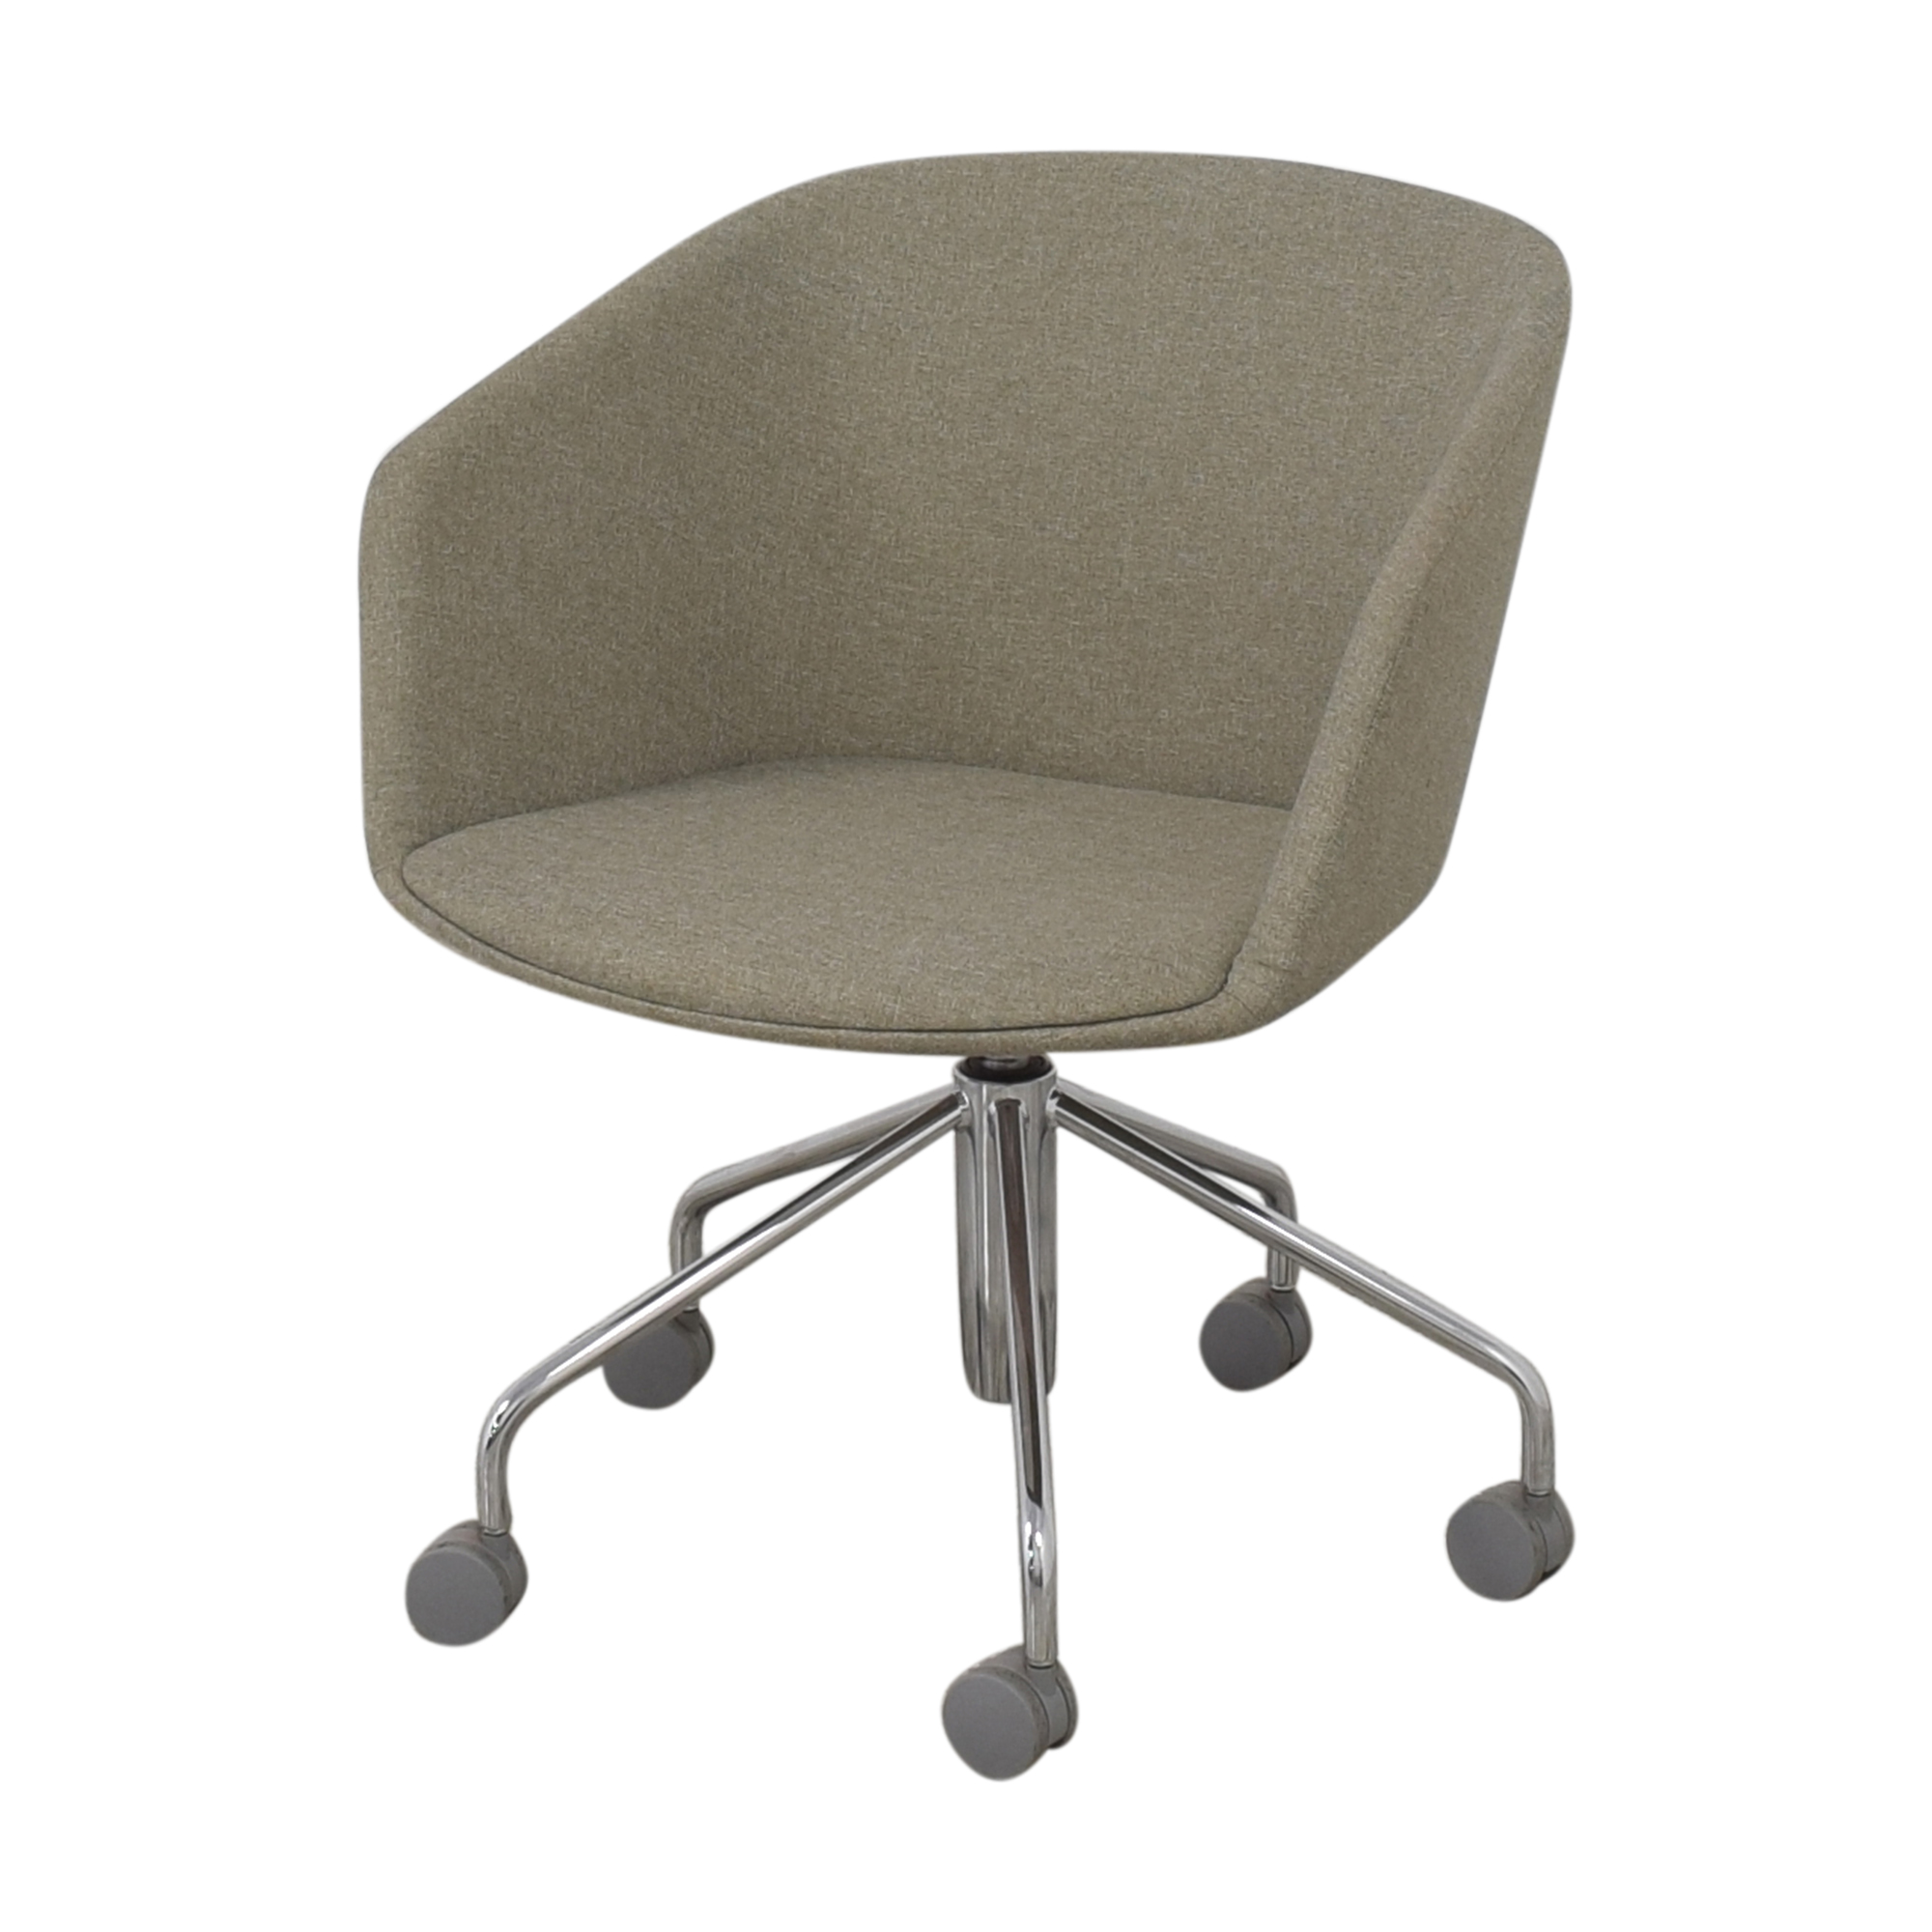 Poppin Poppin Pitch Meeting Chair used